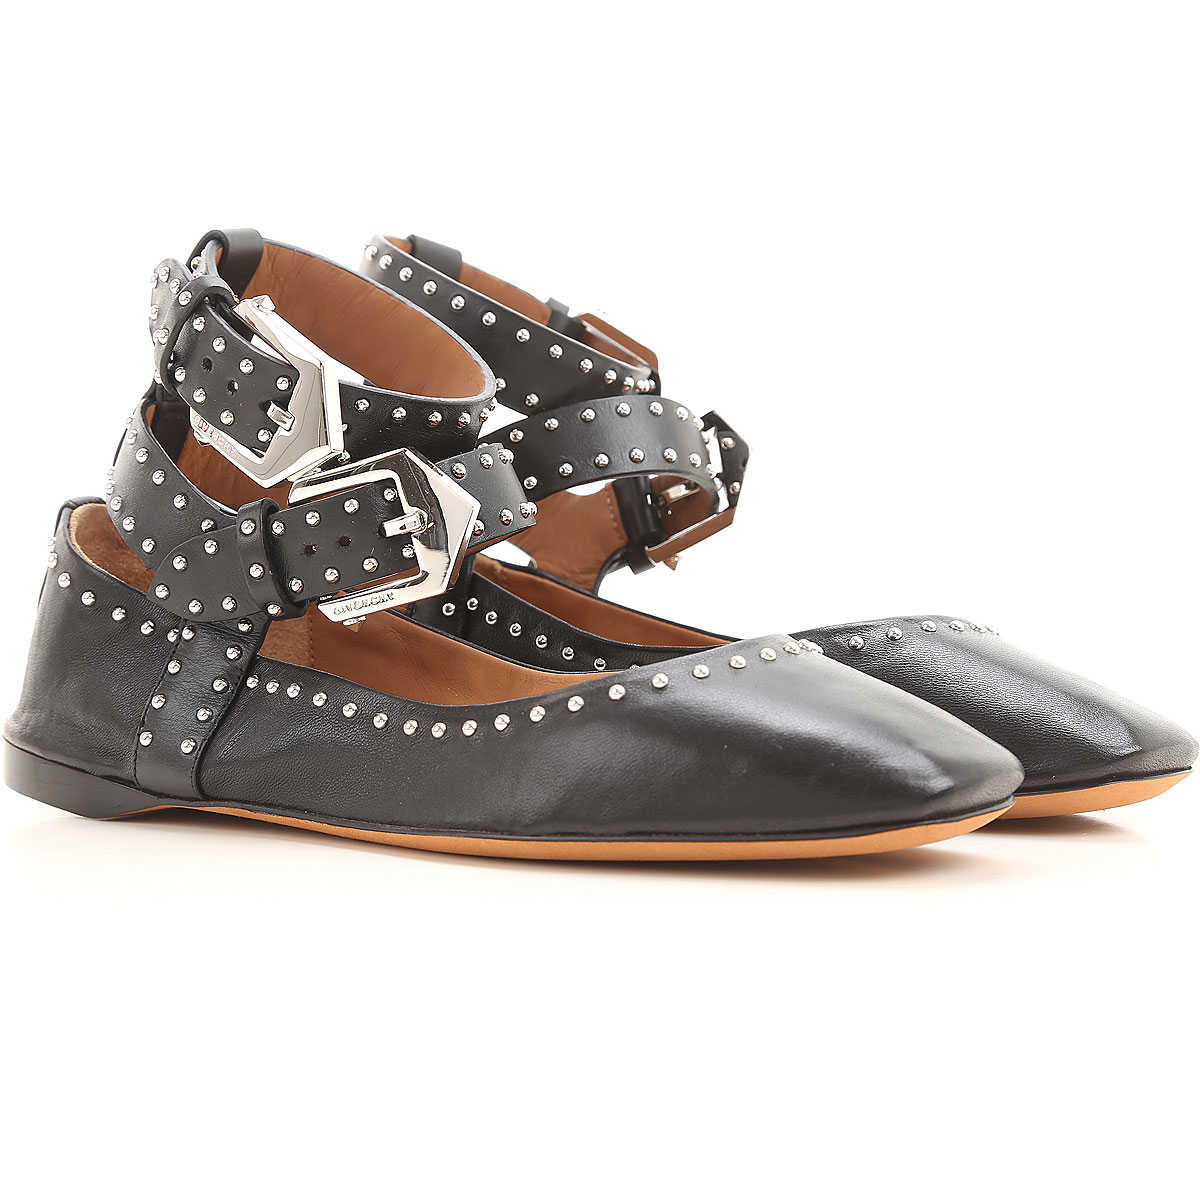 Givenchy Ballet Flats Ballerina Shoes for Women On Sale in Outlet Black SE - GOOFASH